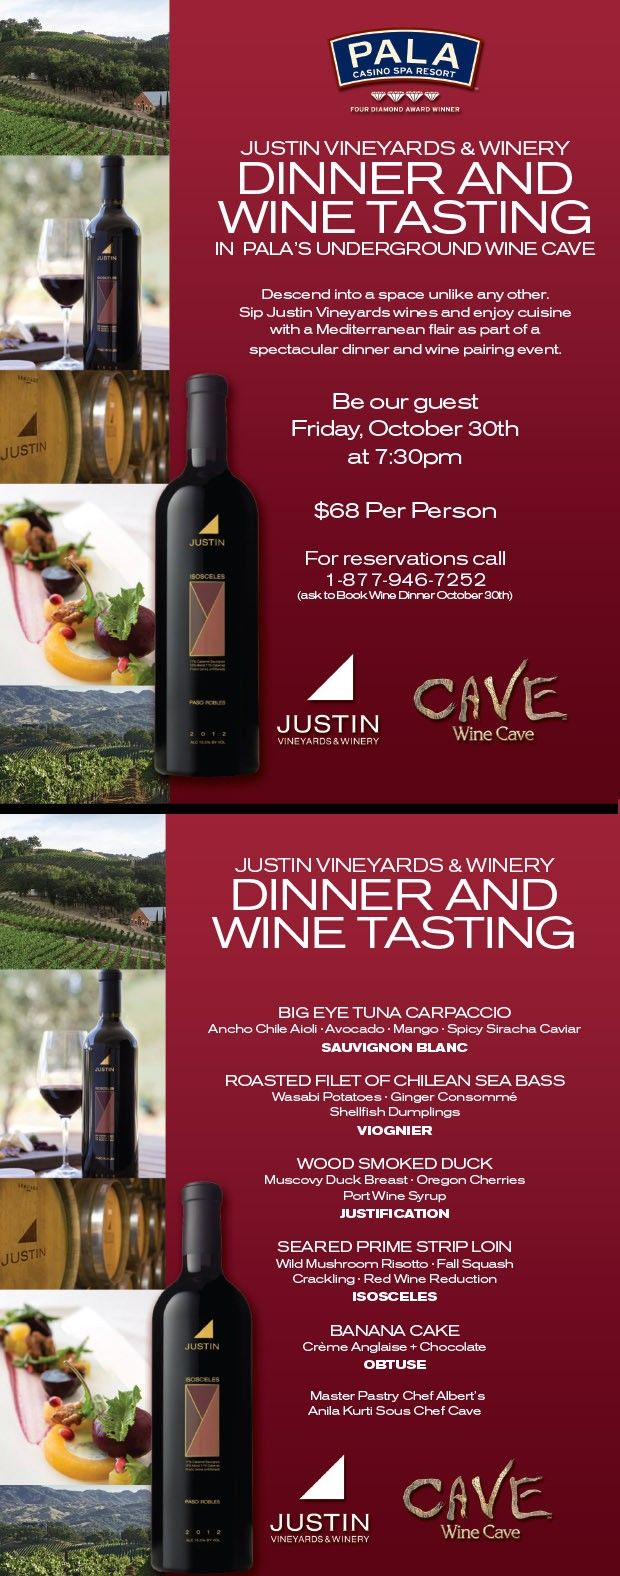 Justin Vineyard Dinner Cave Wine Cave With Images Vineyard Dinner Wine Cave Wine Tasting